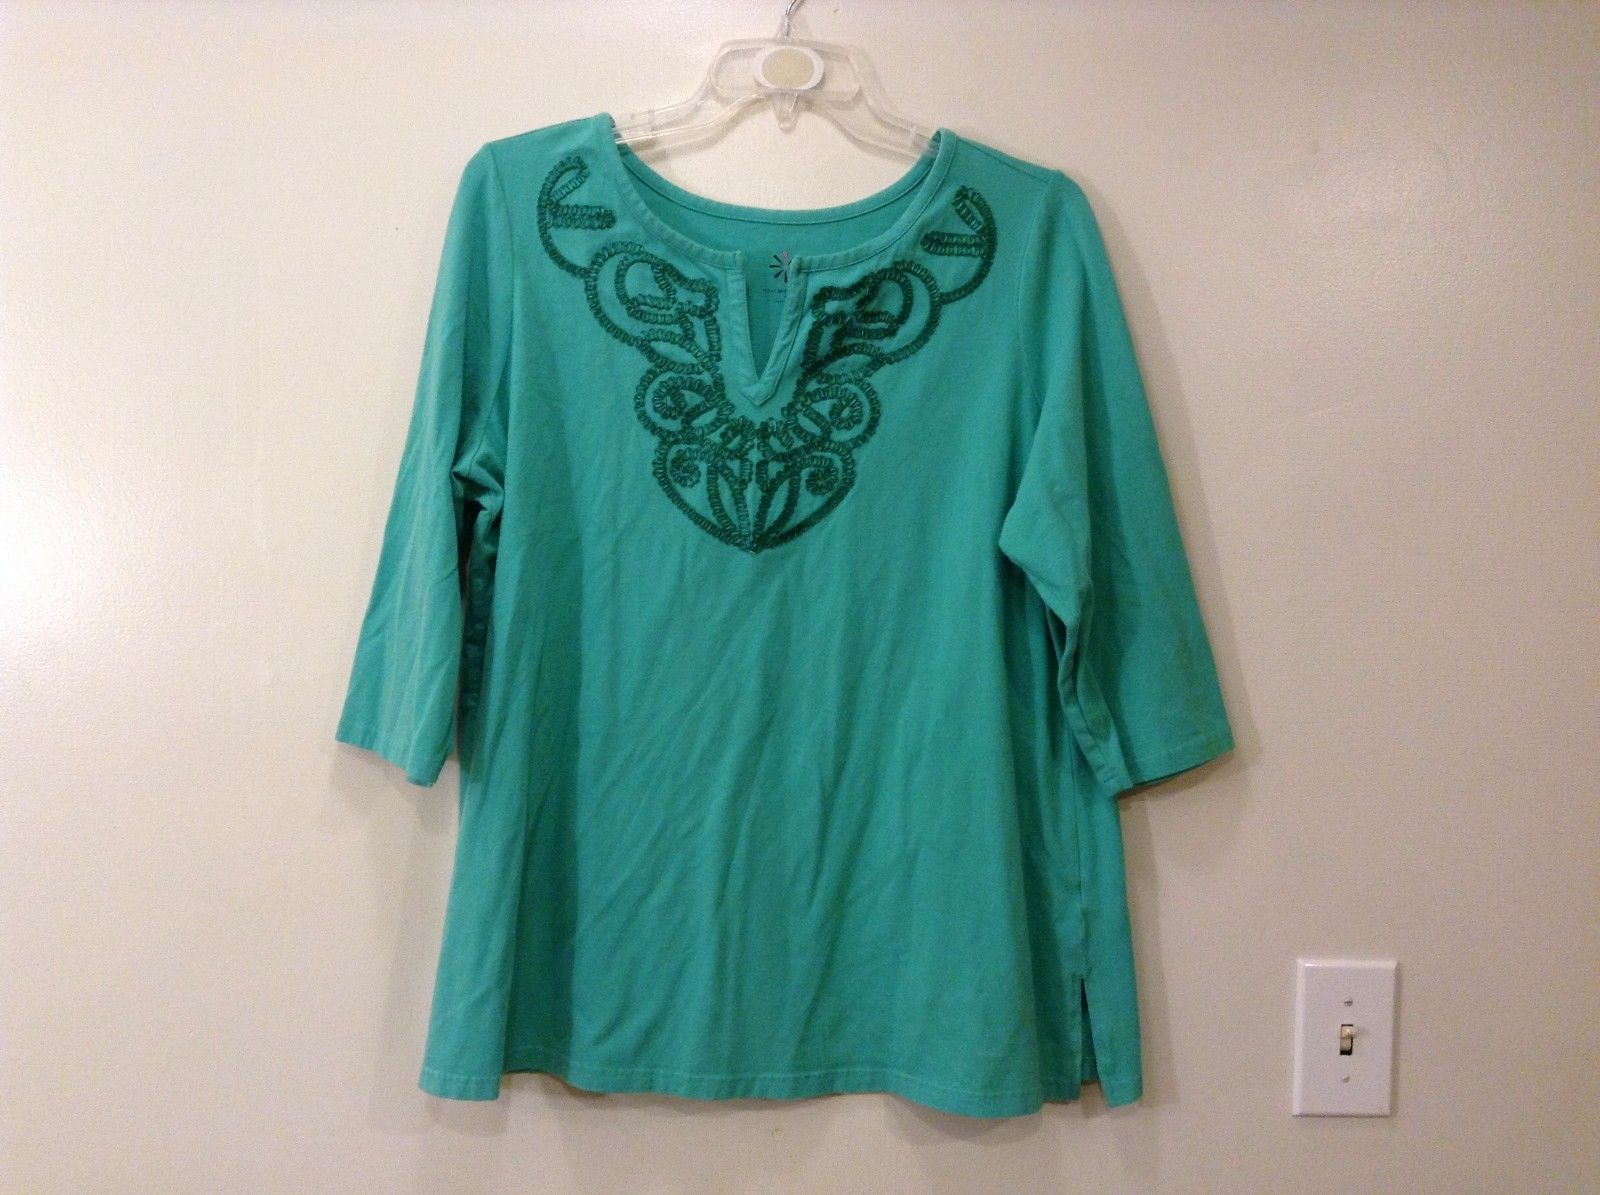 Isaac Mizrahi Live Light Green V-Neck Embroidery T-Shirt Blouse Size 1X